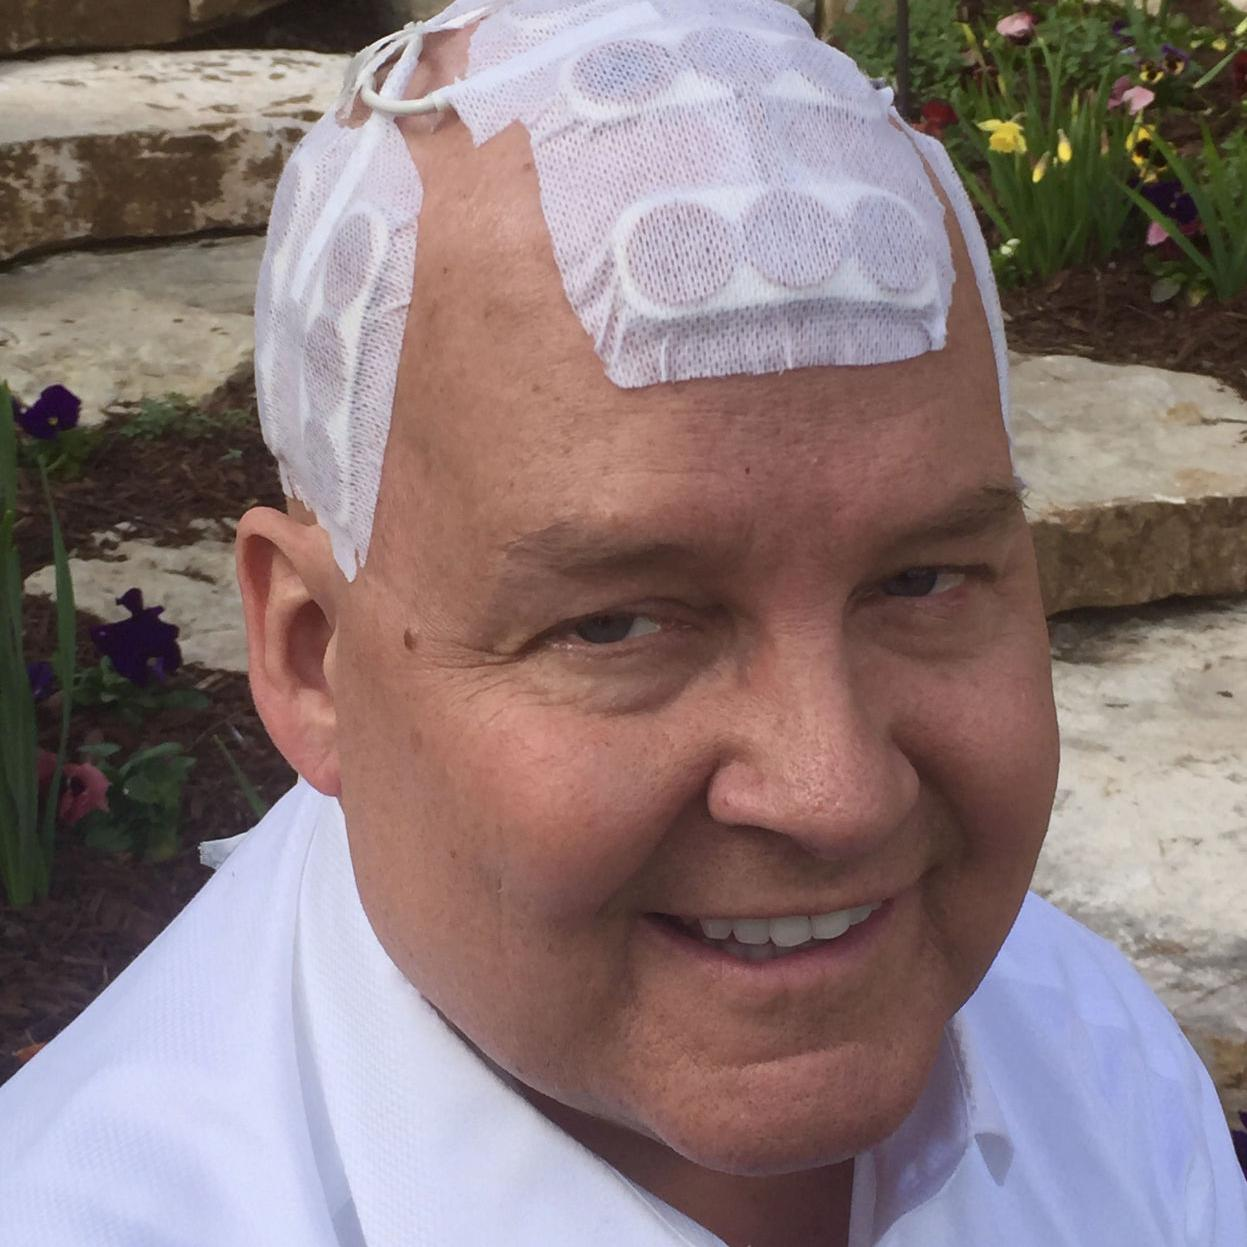 Oriental Trading Ceo Excited About The Results He S Seeing With Device To Treat Brain Tumors Health Omaha Com